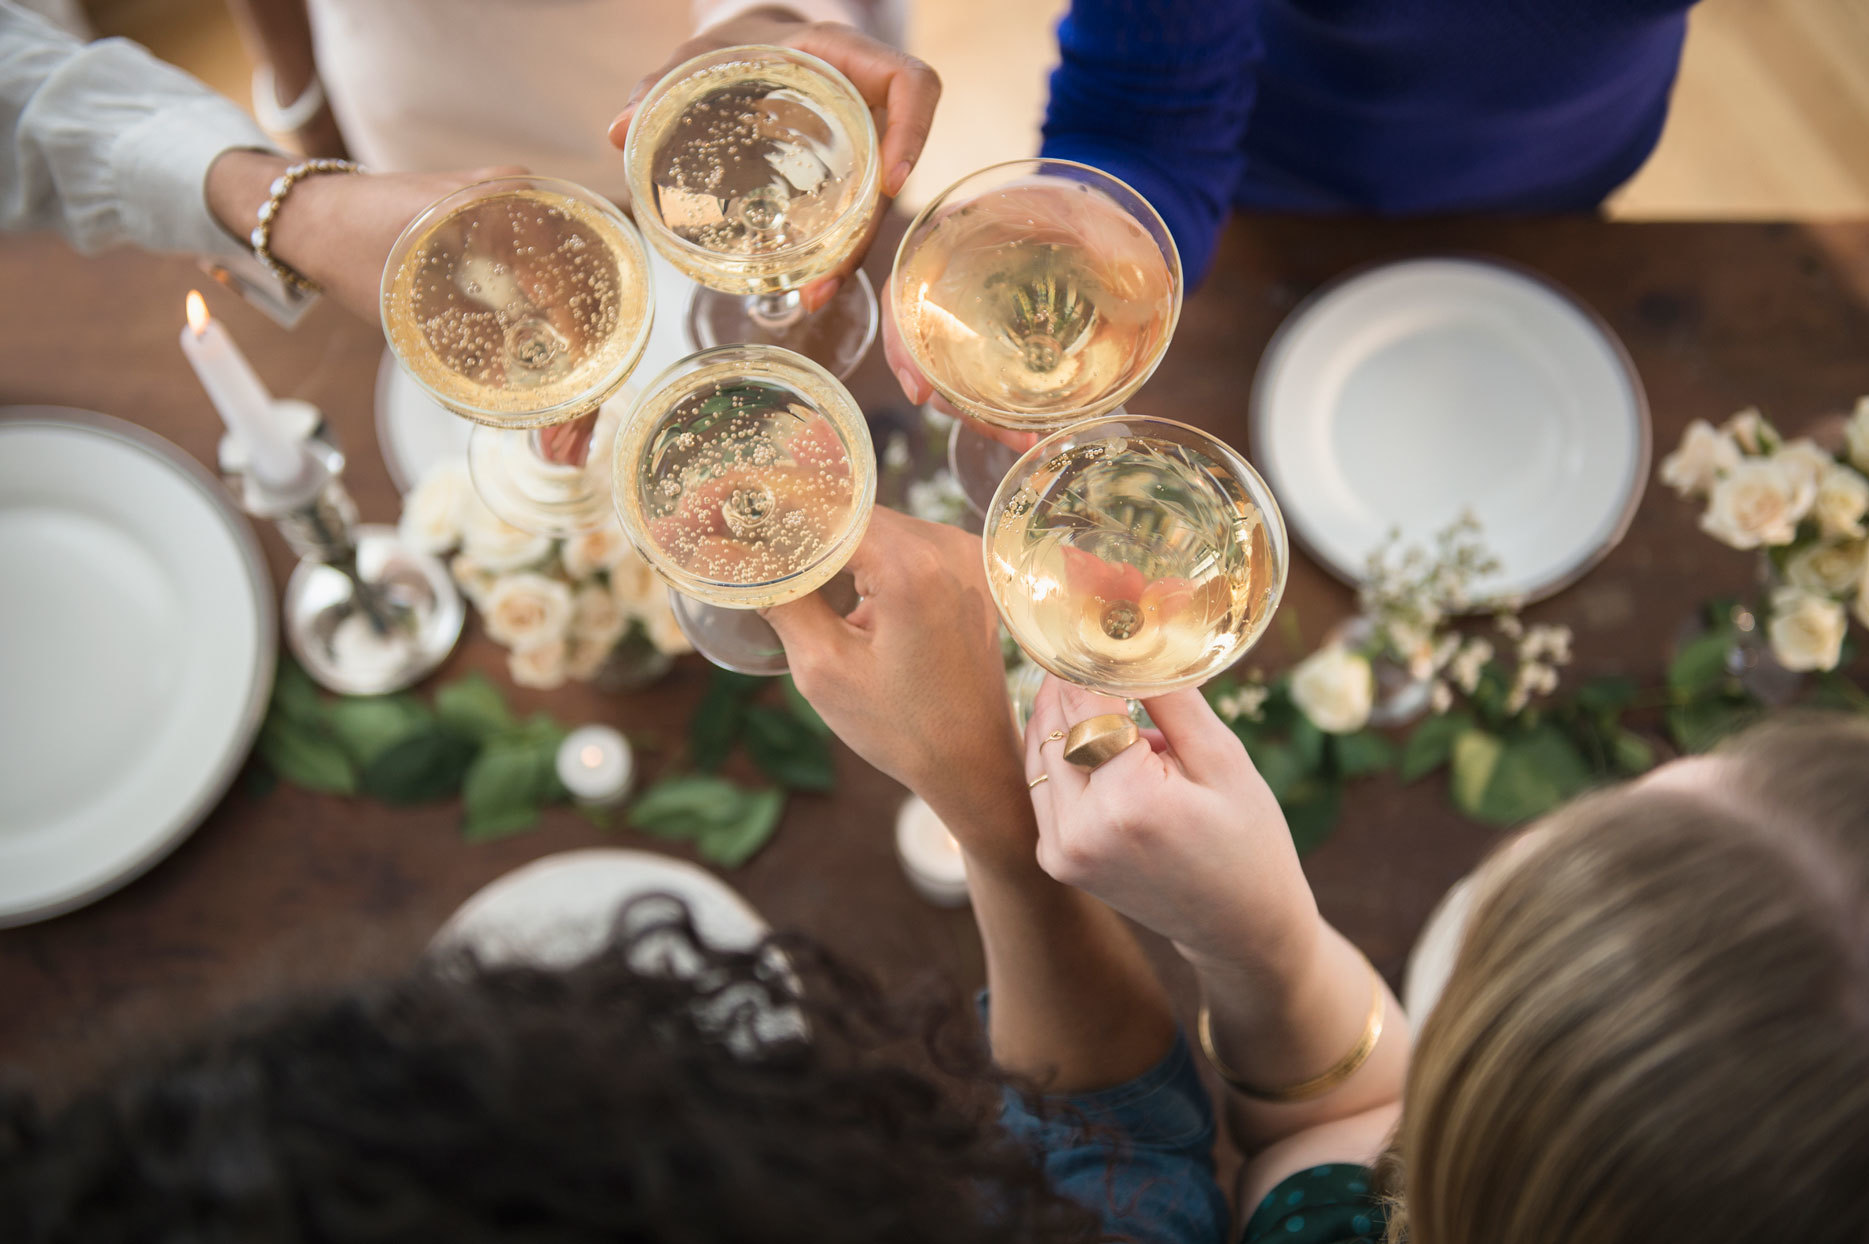 People toasting with champagne glasses